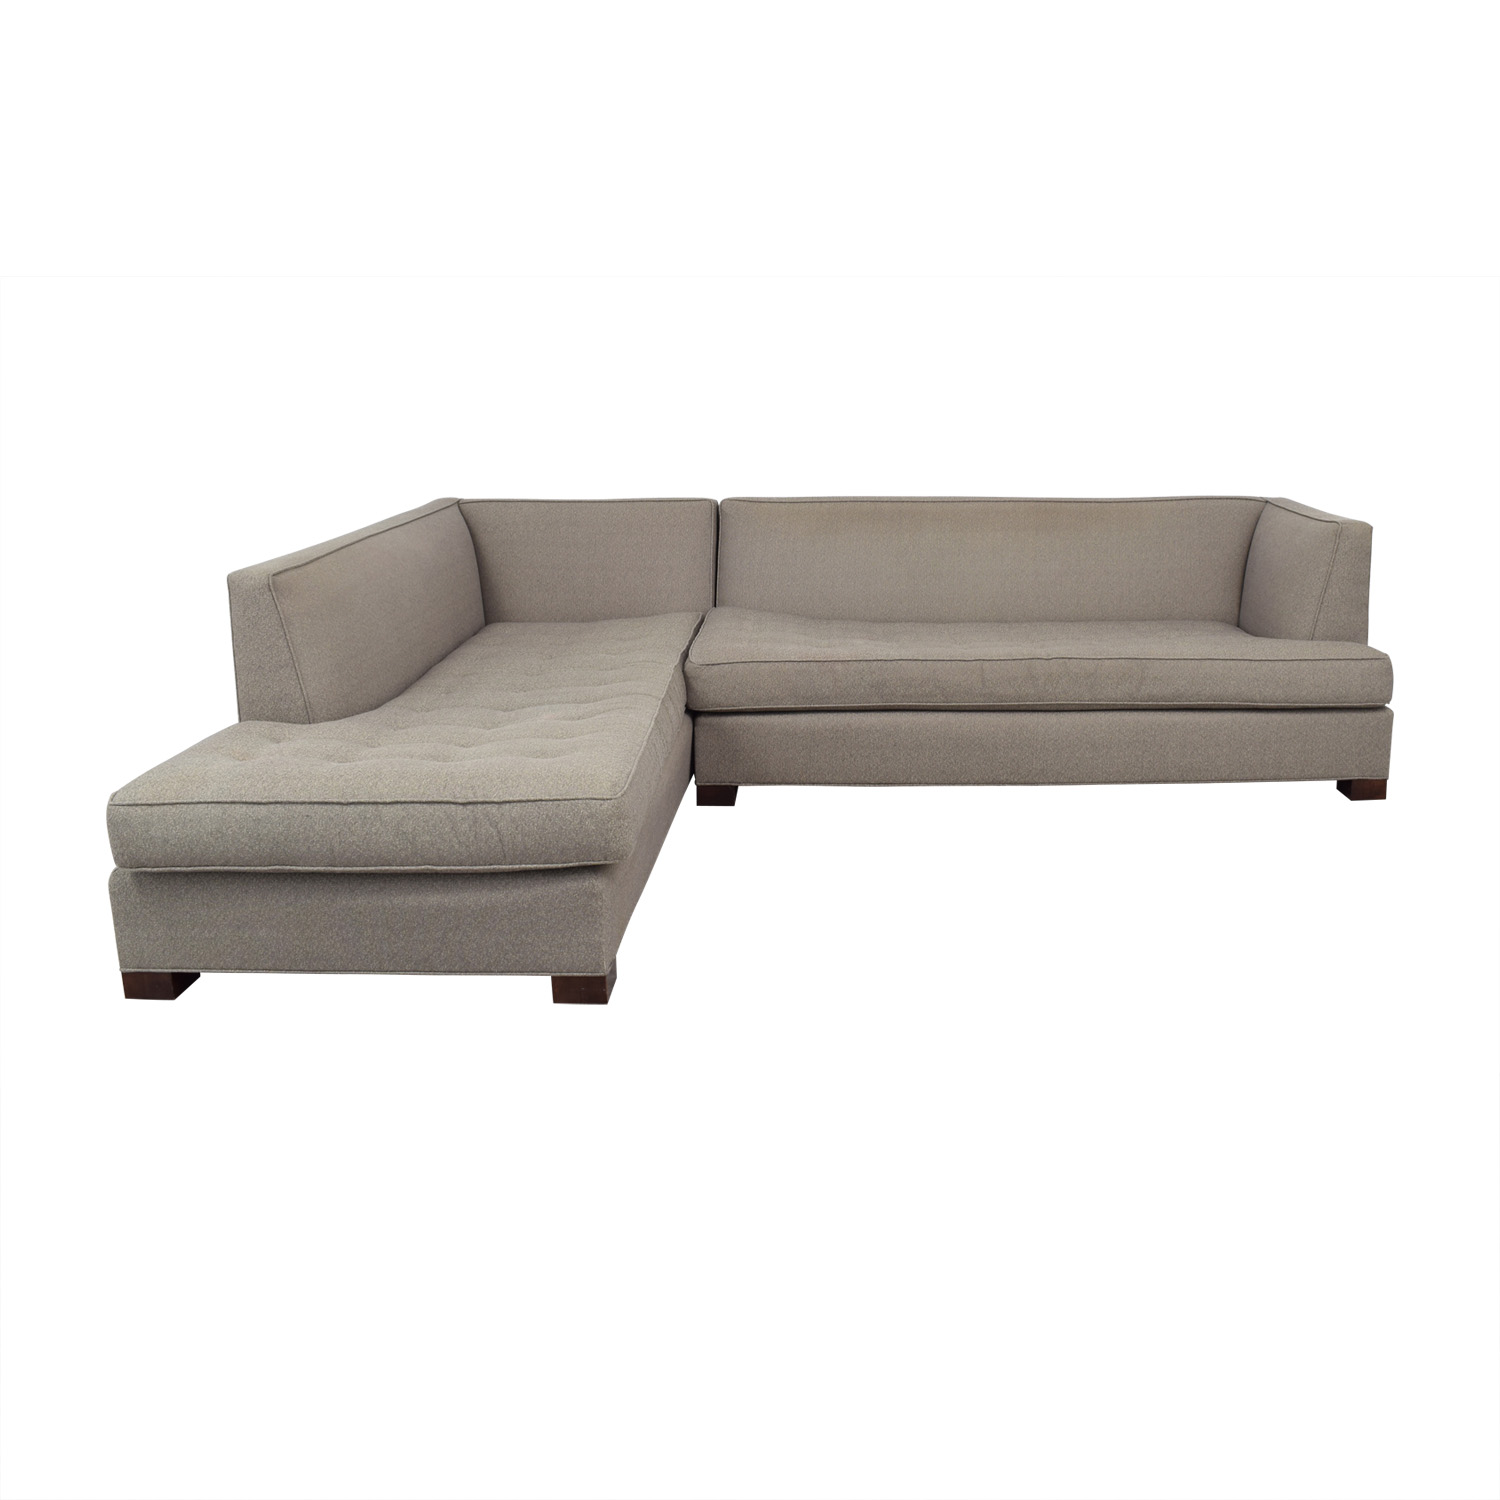 buy Mitchell Gold + Bob Williams Beige Tufted Chaise Sectional Mitchell Gold + Bob Williams